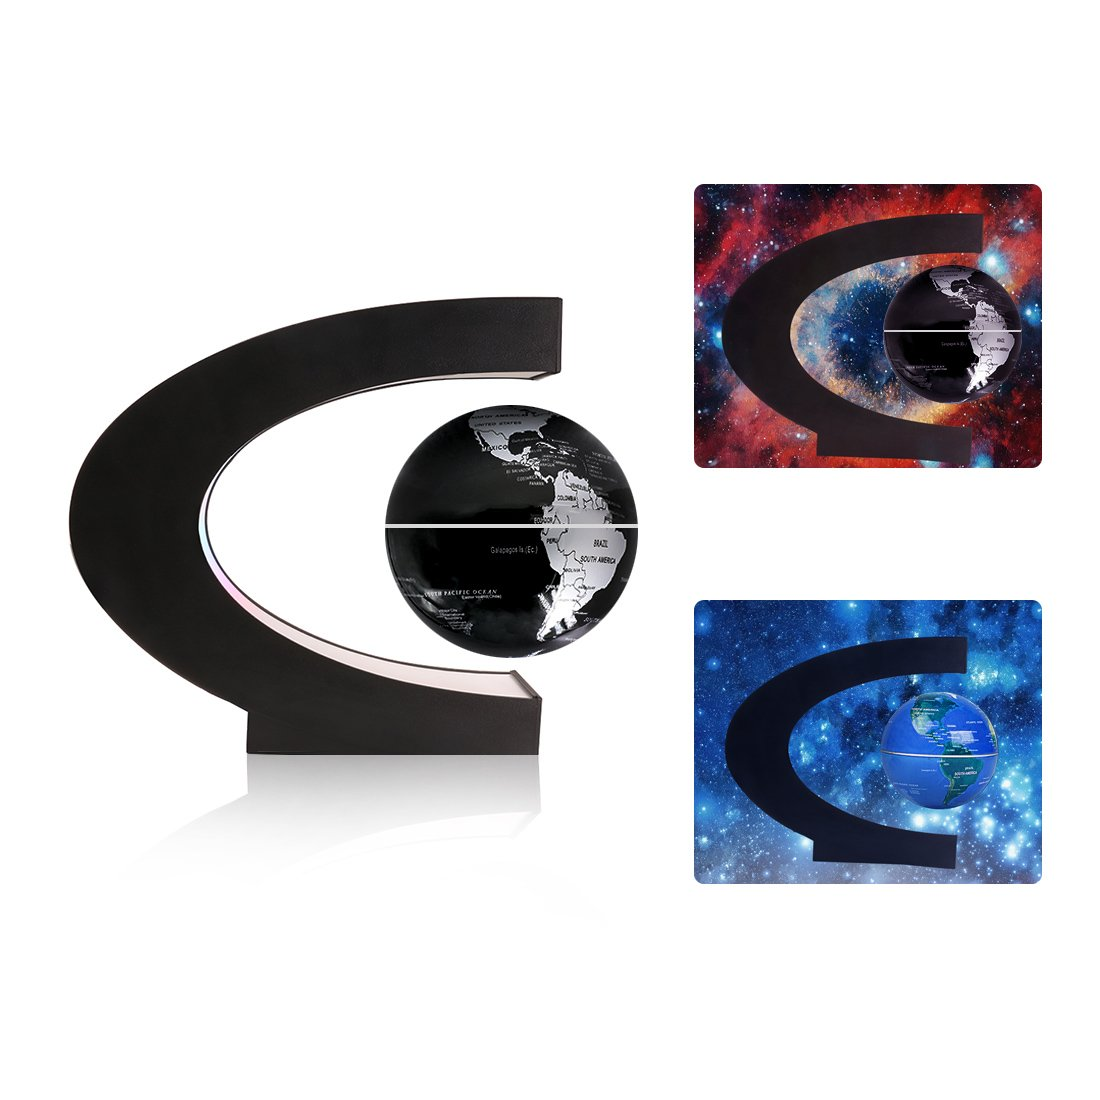 Magnetic Floating Globe 3inch Rotating Mysteriously Suspended In Air World Map with LED Lights for Children Gift Home Office Desk Decoration (Black)